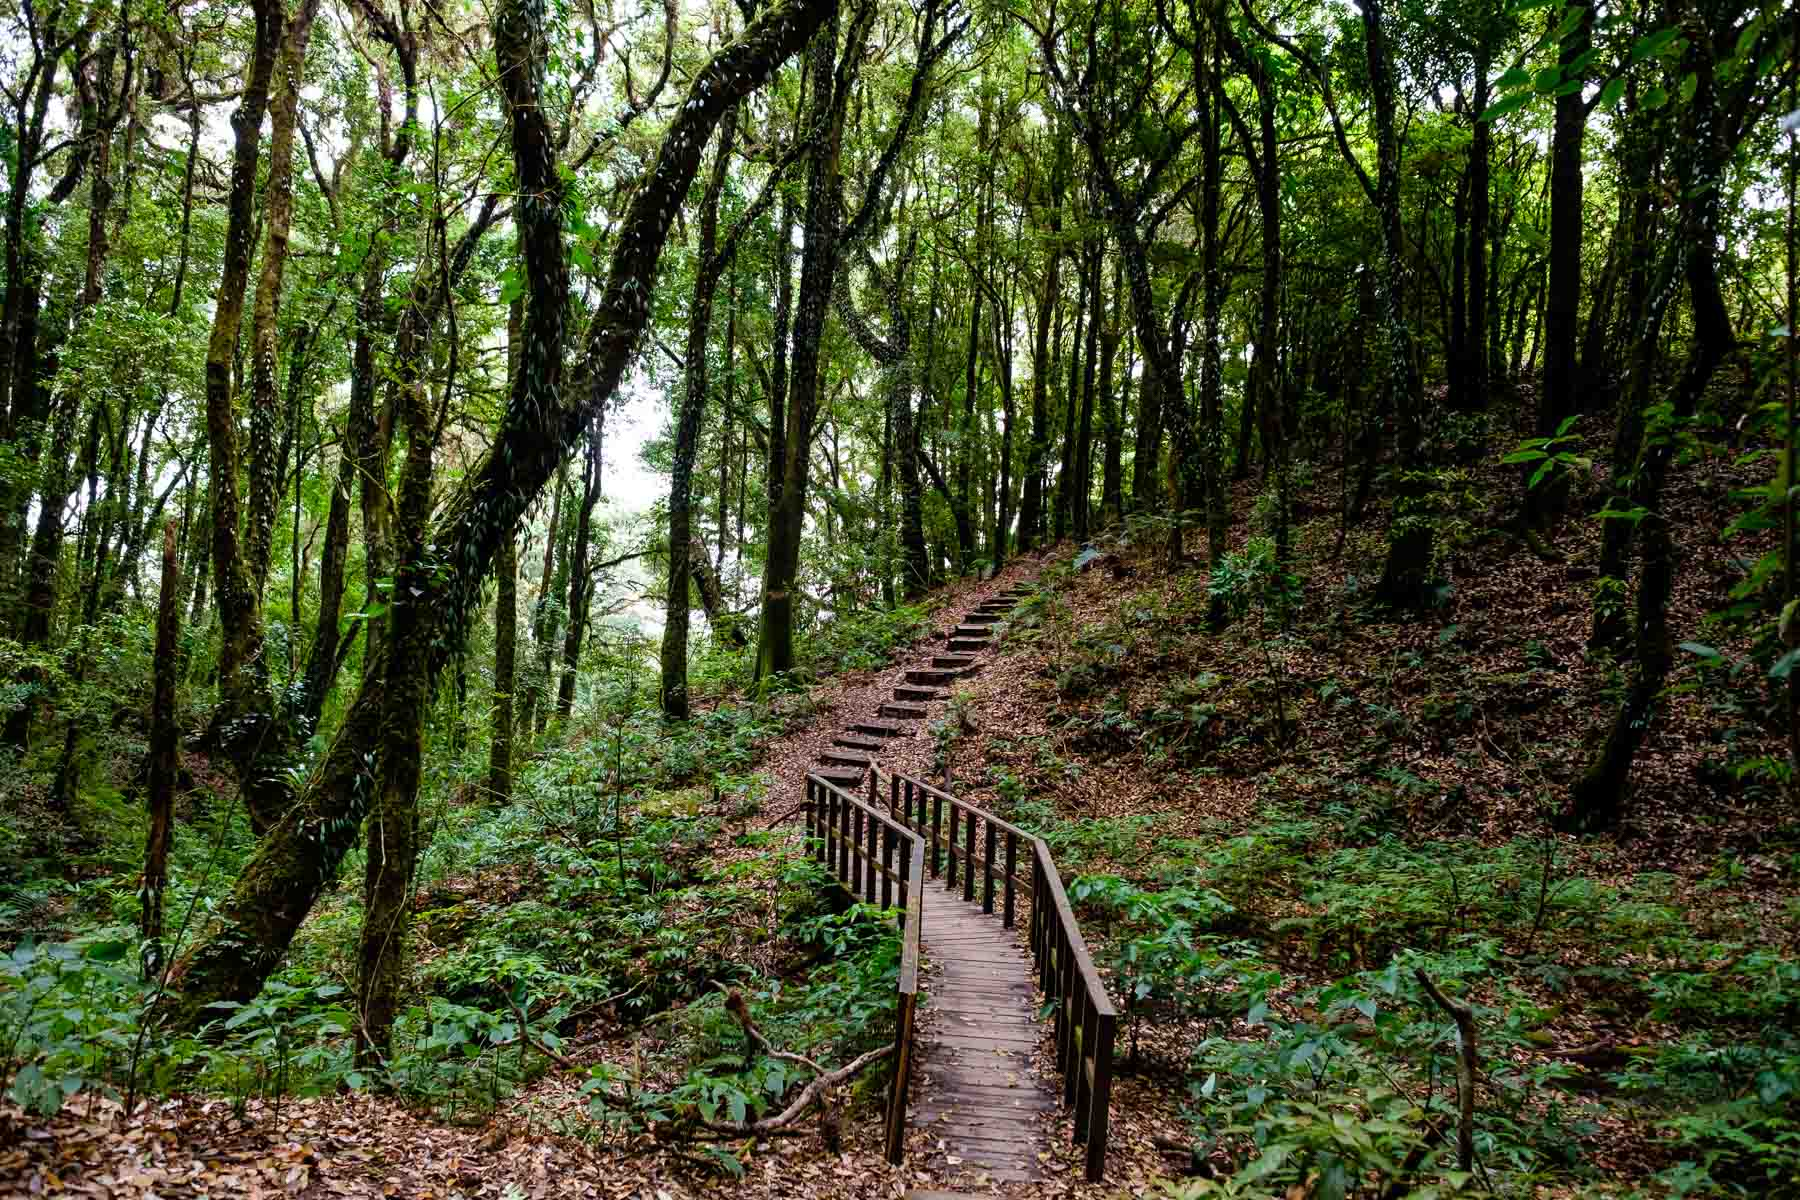 Wooden stairs up through forest